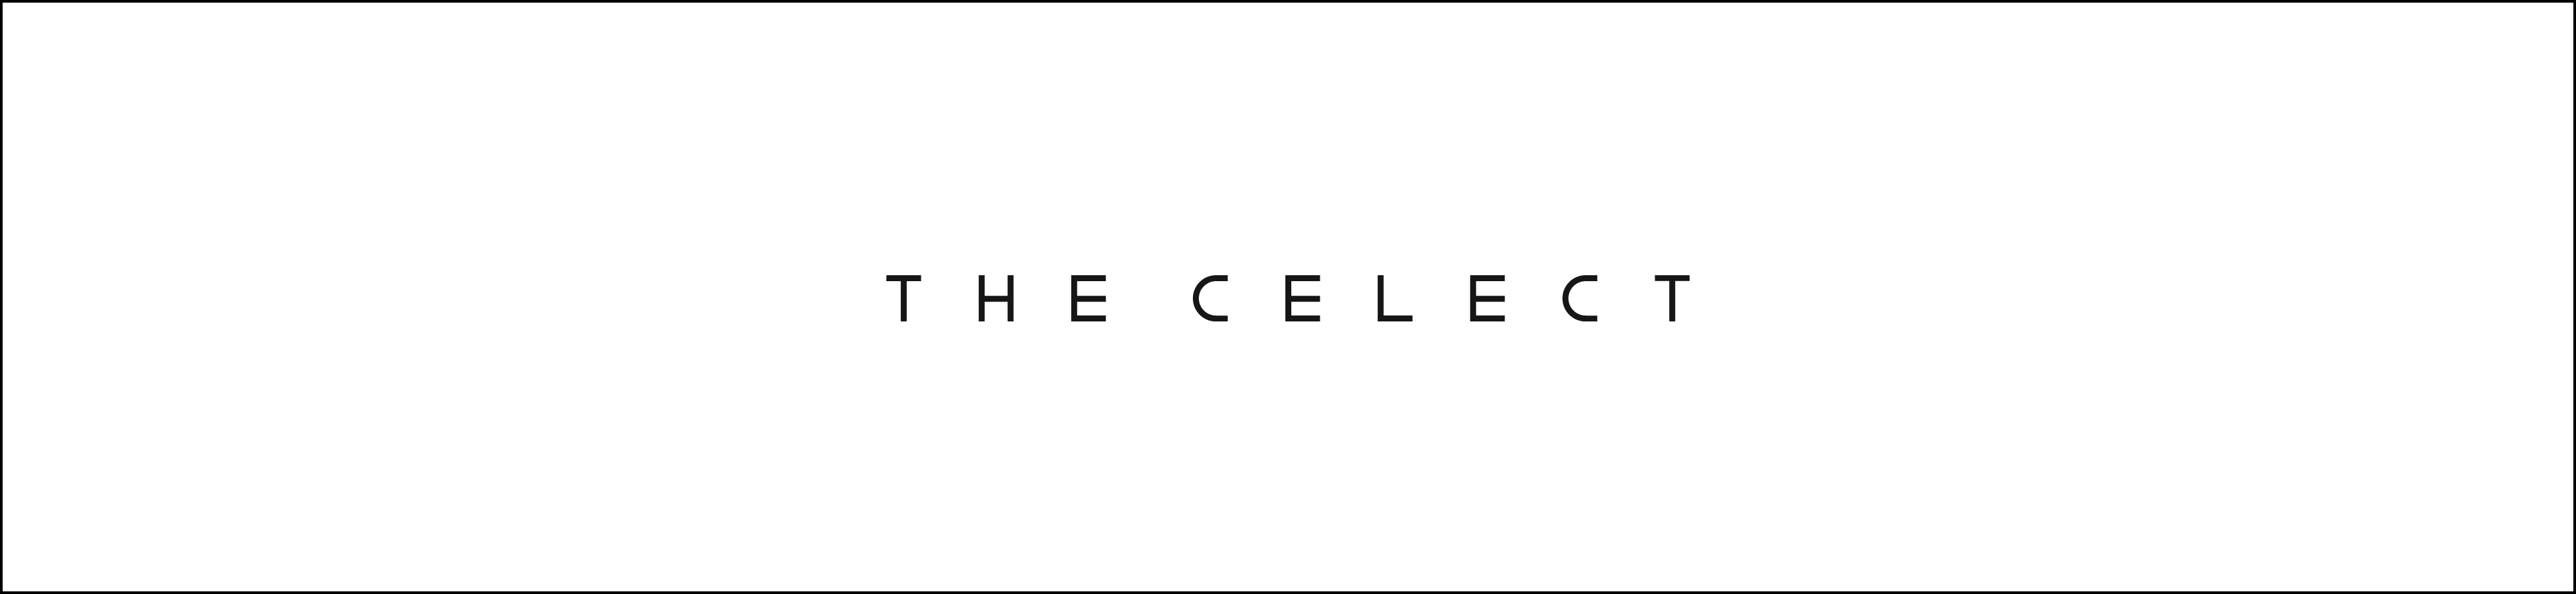 THE CELECT COLLECTION